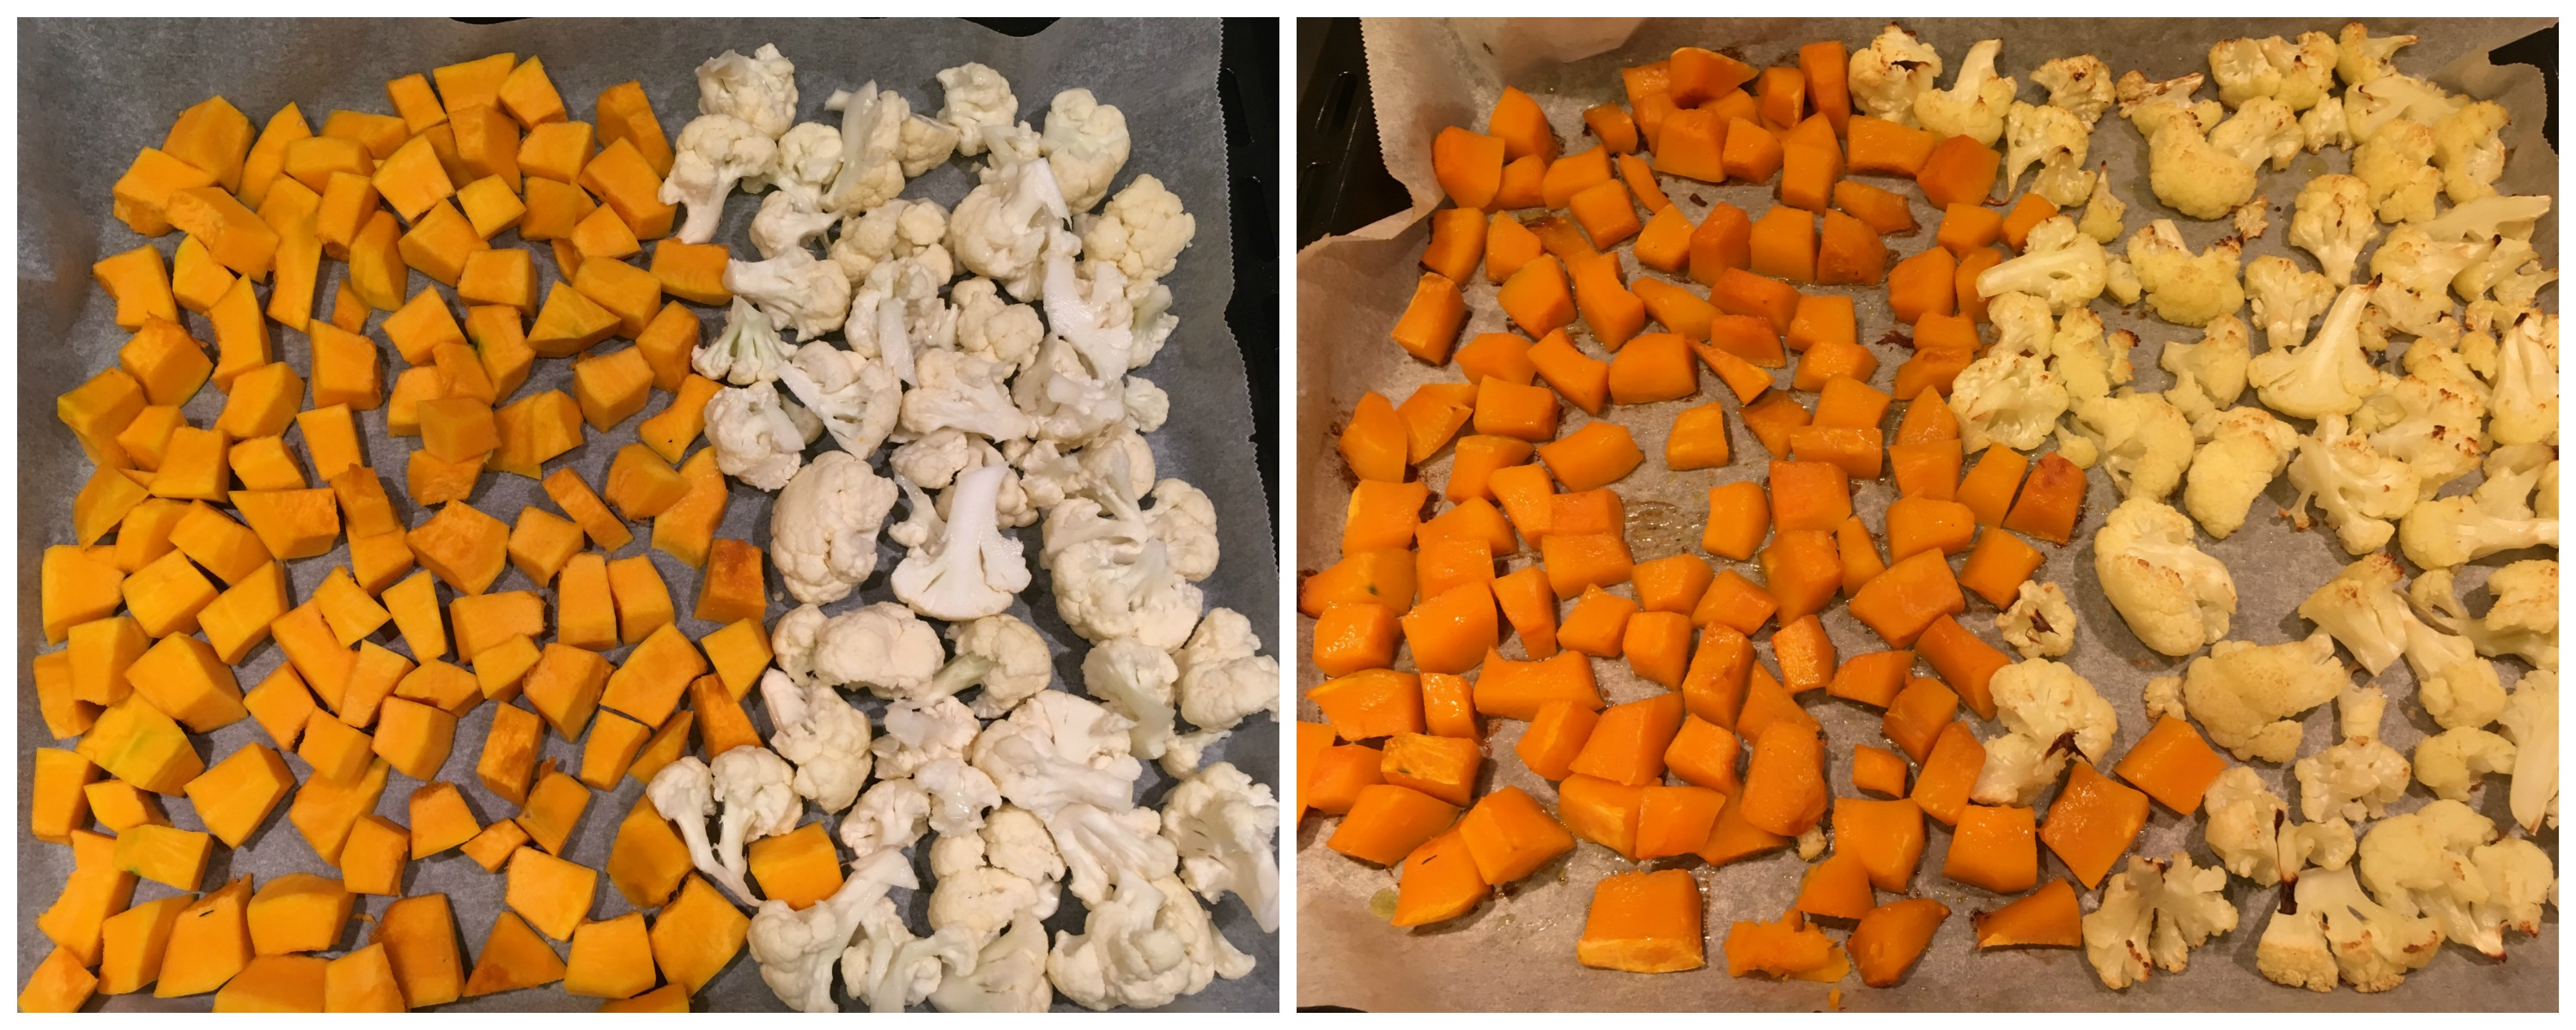 Cauliflower and Kabocha Squash prepping for the Pumpkin and Cauliflower Quinoa Salad with Pomegranate Salad Dressing - The Histamine Friendly Kitchen